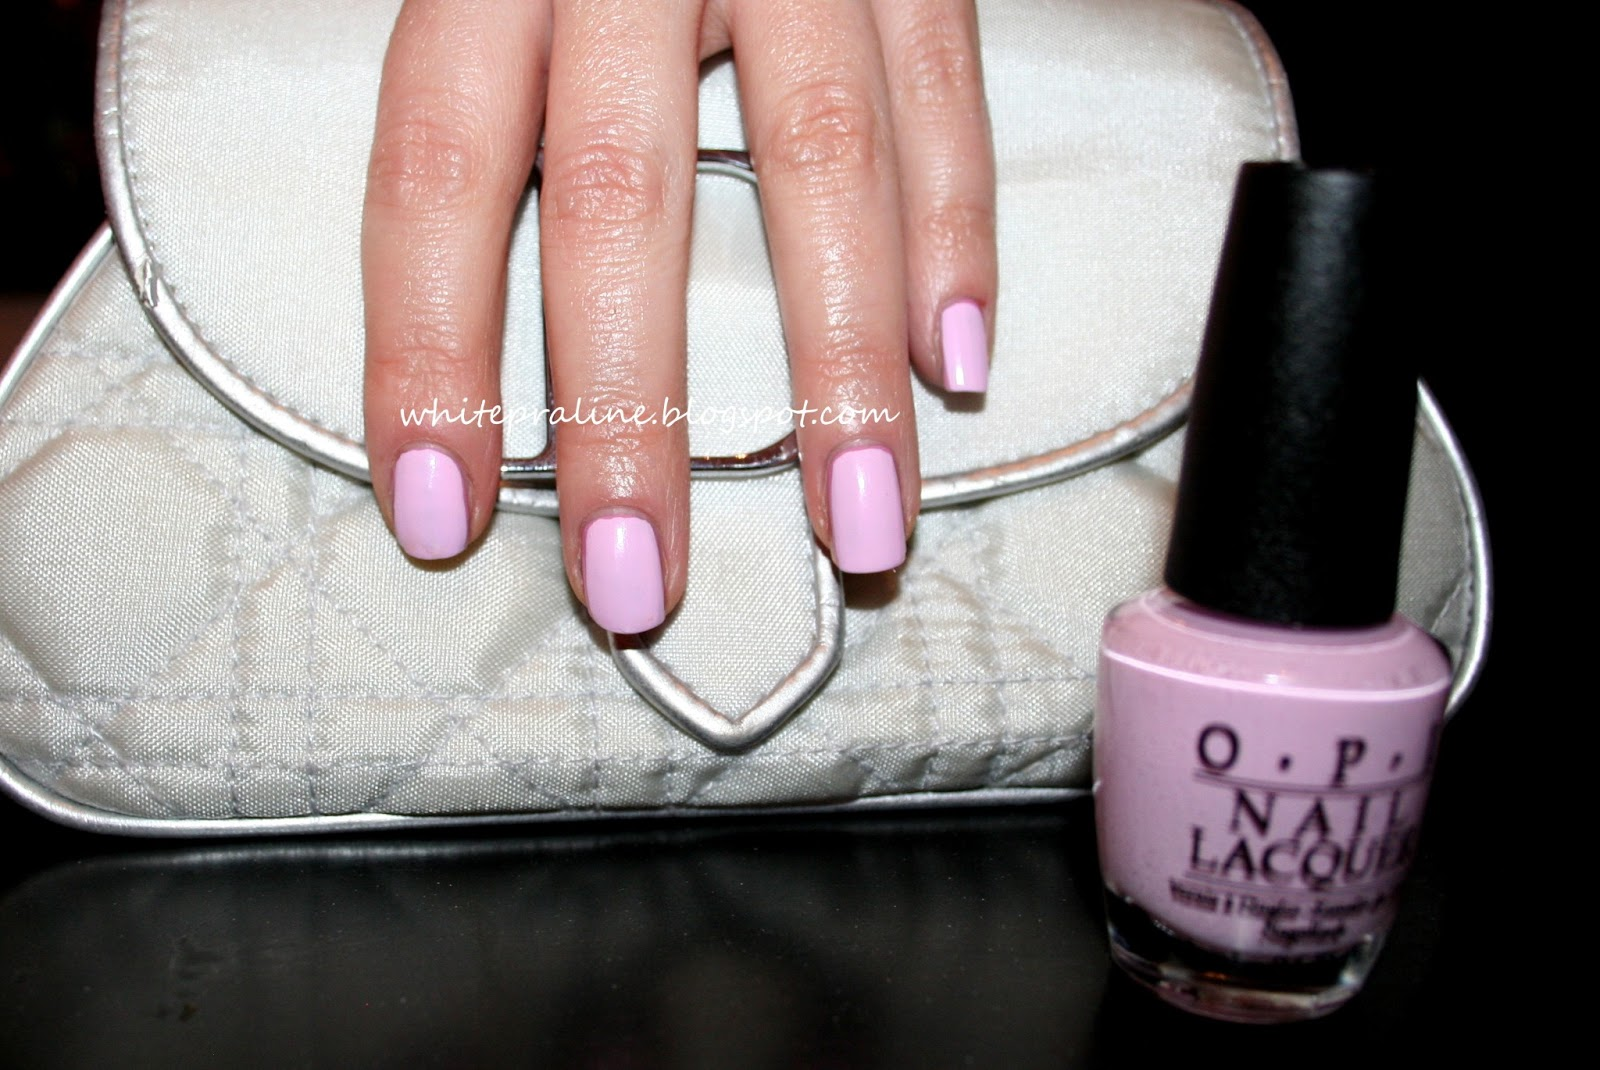 Opi Nail Lacquer Mod About You White Praline